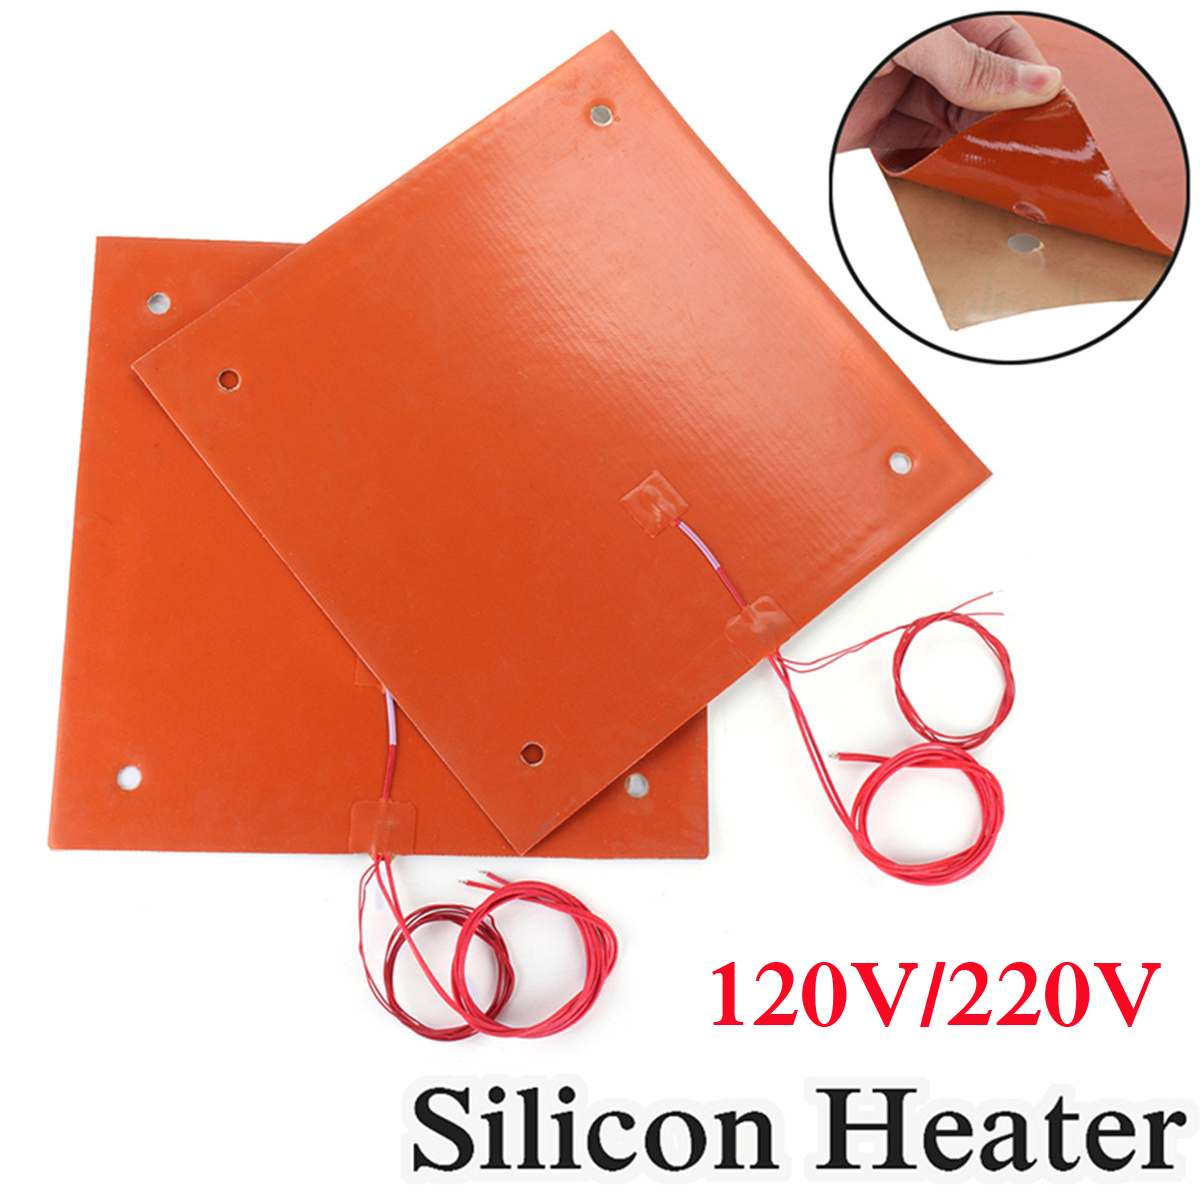 750w 310*310mm 120v/220v Flexible Waterproof Silicone Heated Bed Heating Heater Pad For CR-10 3D Printer Bed Holes